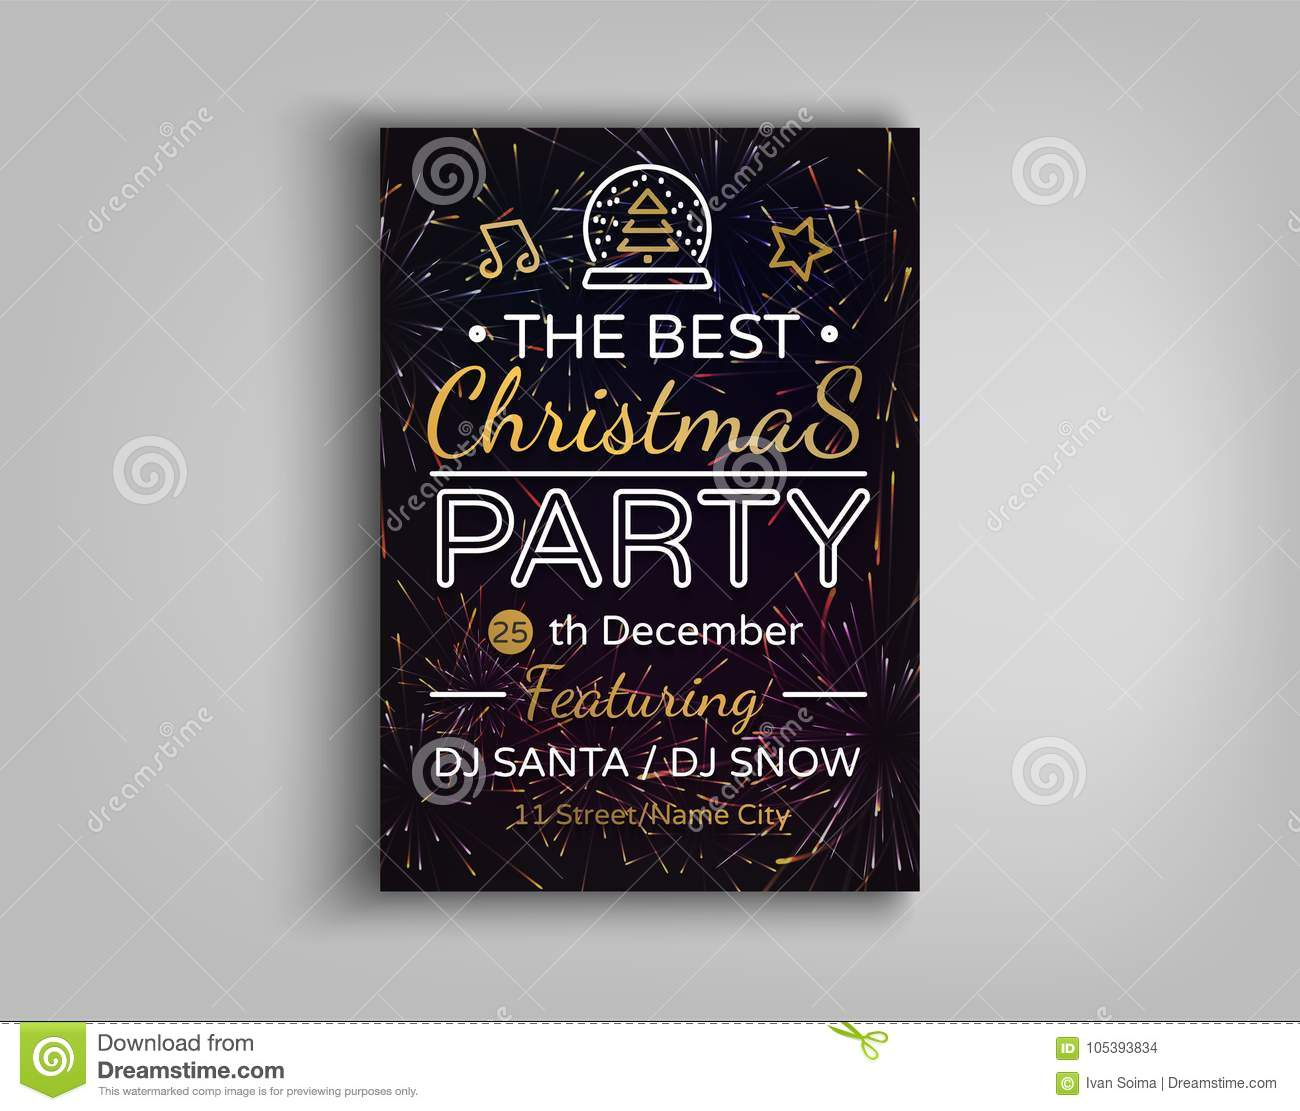 Christmas Party Brochure Vector Illustration Template